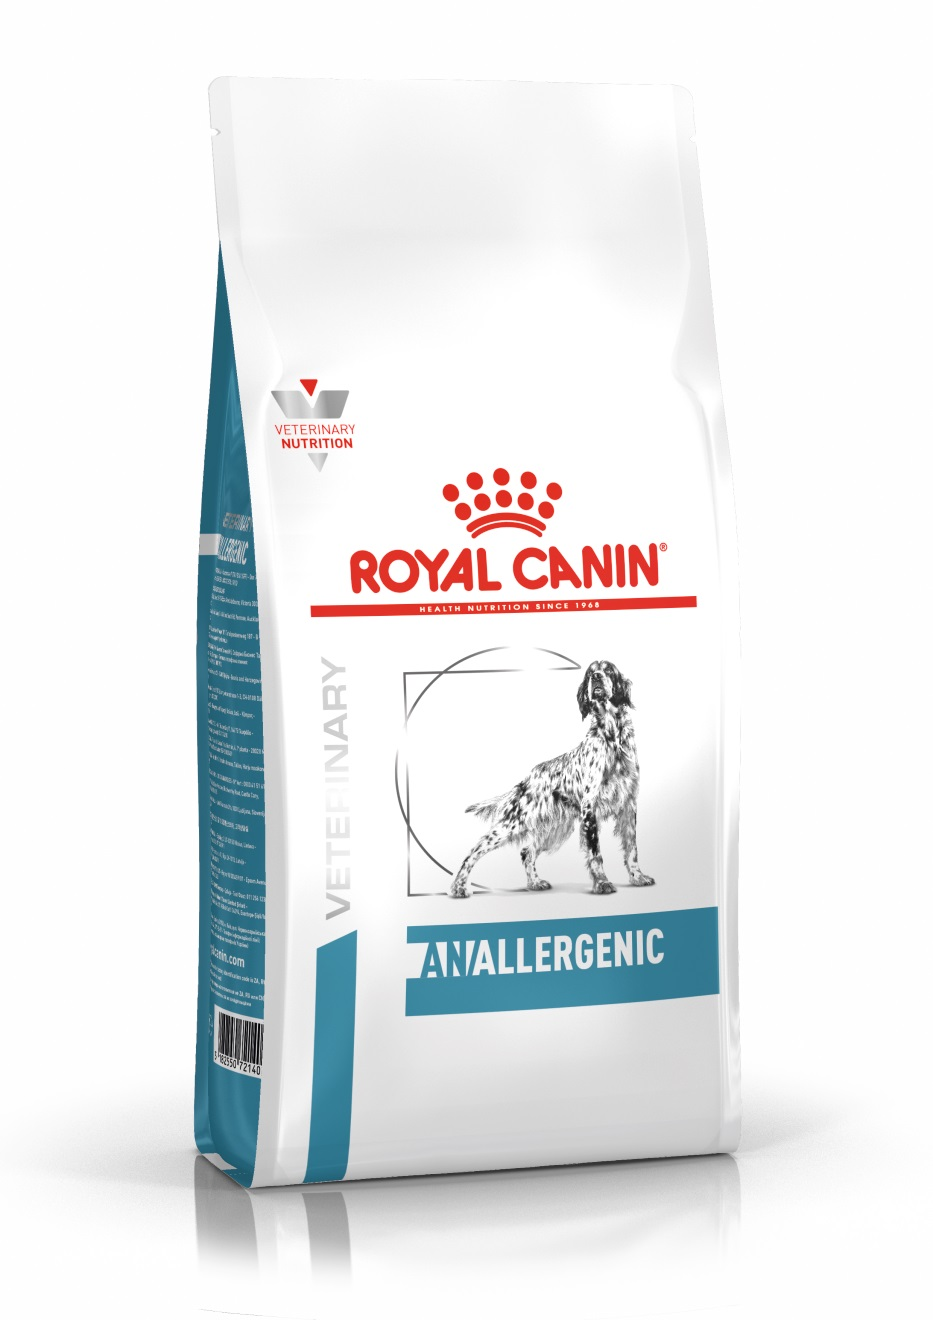 Royal Canin Anallergenic Dog Food With Food Allergies, 3 Kg